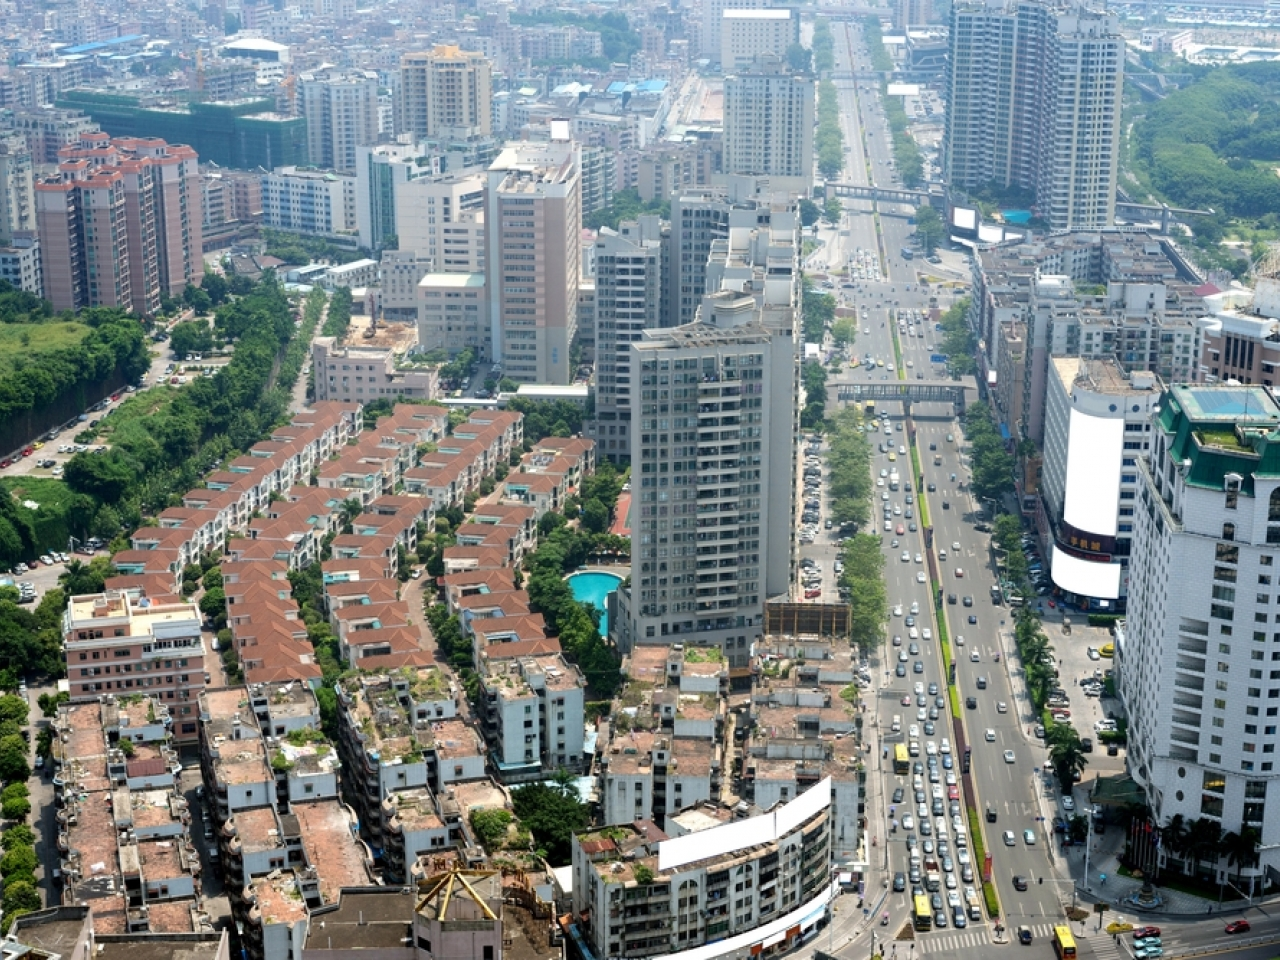 Dongguan launched a citywide testing programme on Monday, following two cases reported since last Friday. Image: Shutterstock